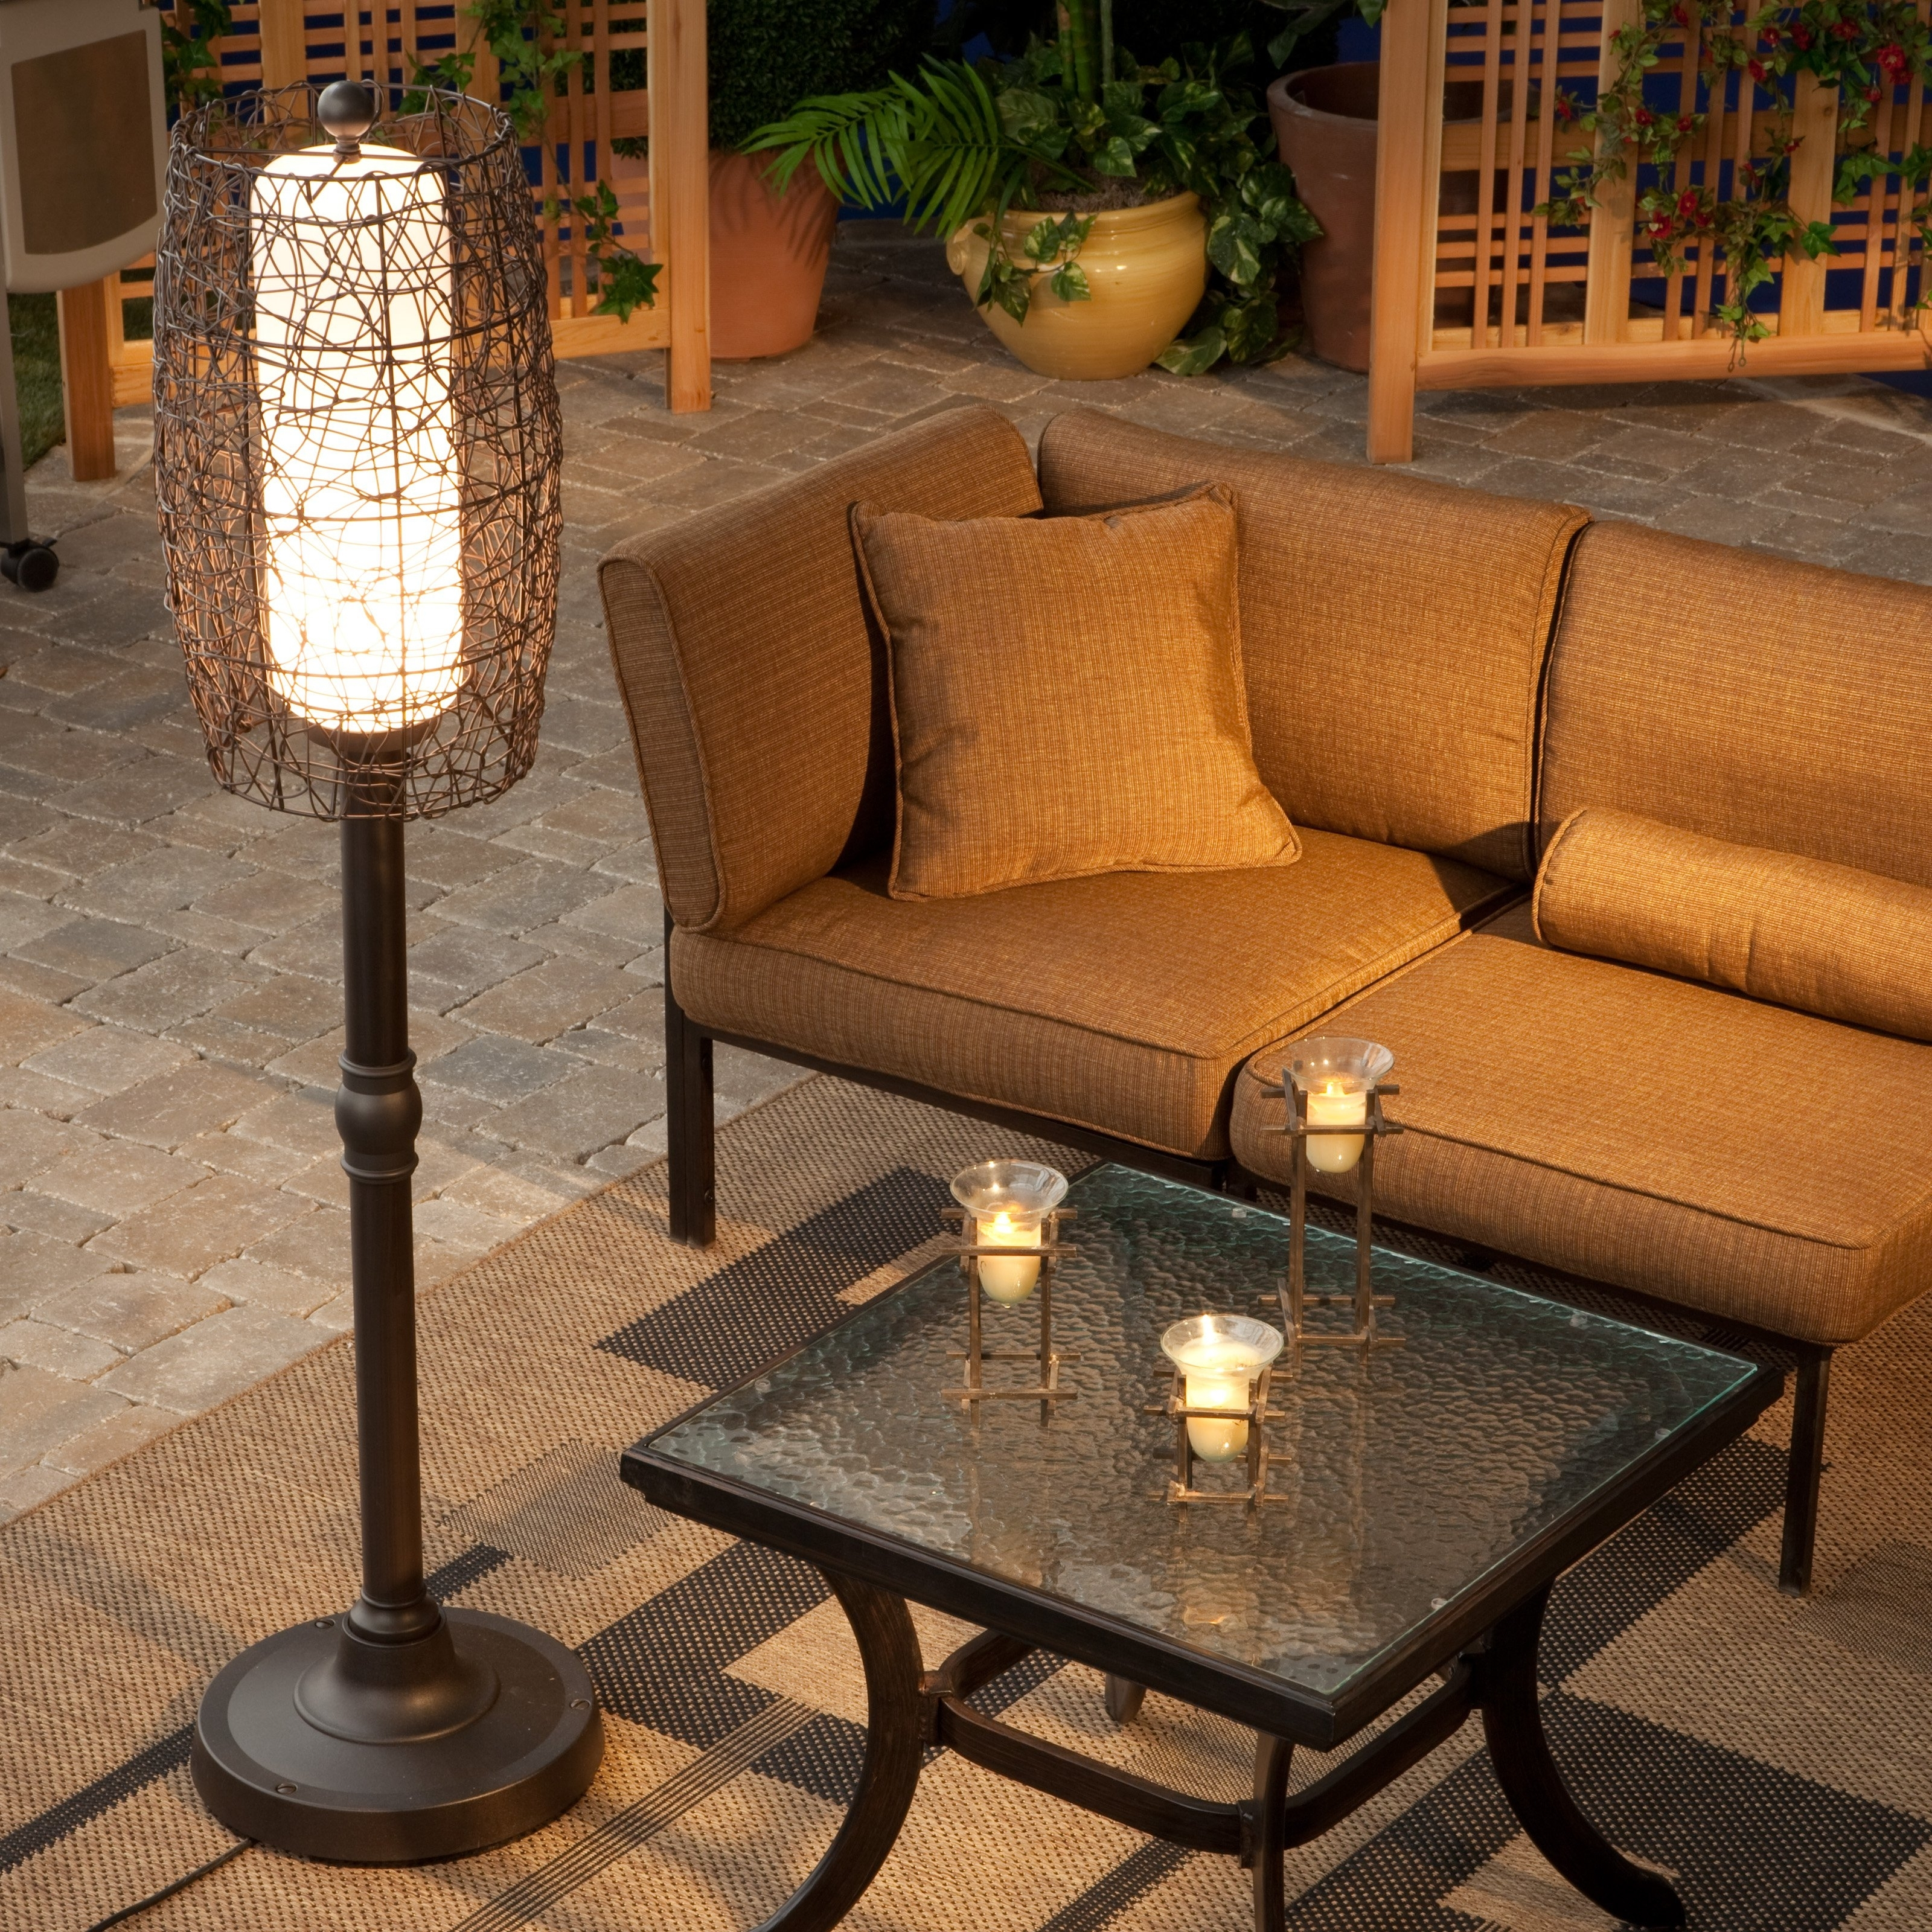 Most Popular Outdoor Lawn Lanterns Intended For Patio Lamps Outdoor Lighting – Outdoor Lighting Ideas (View 4 of 20)